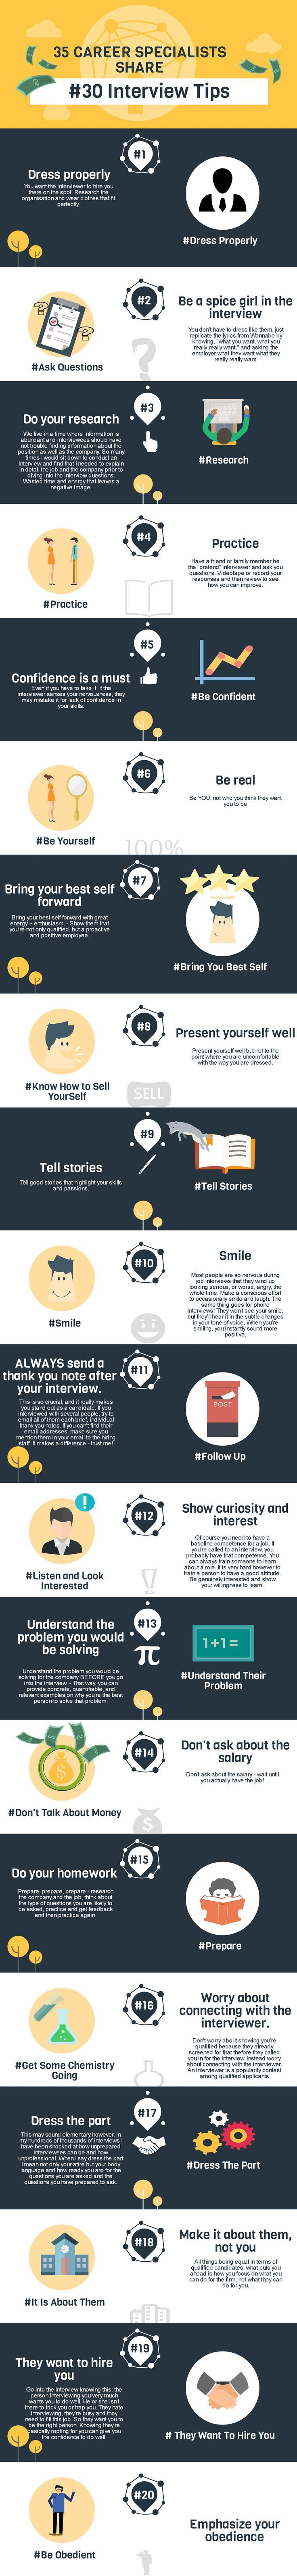 15 tips to help you shine at your job interview infographic job interviews business and career advice - Resume And Interview Tips